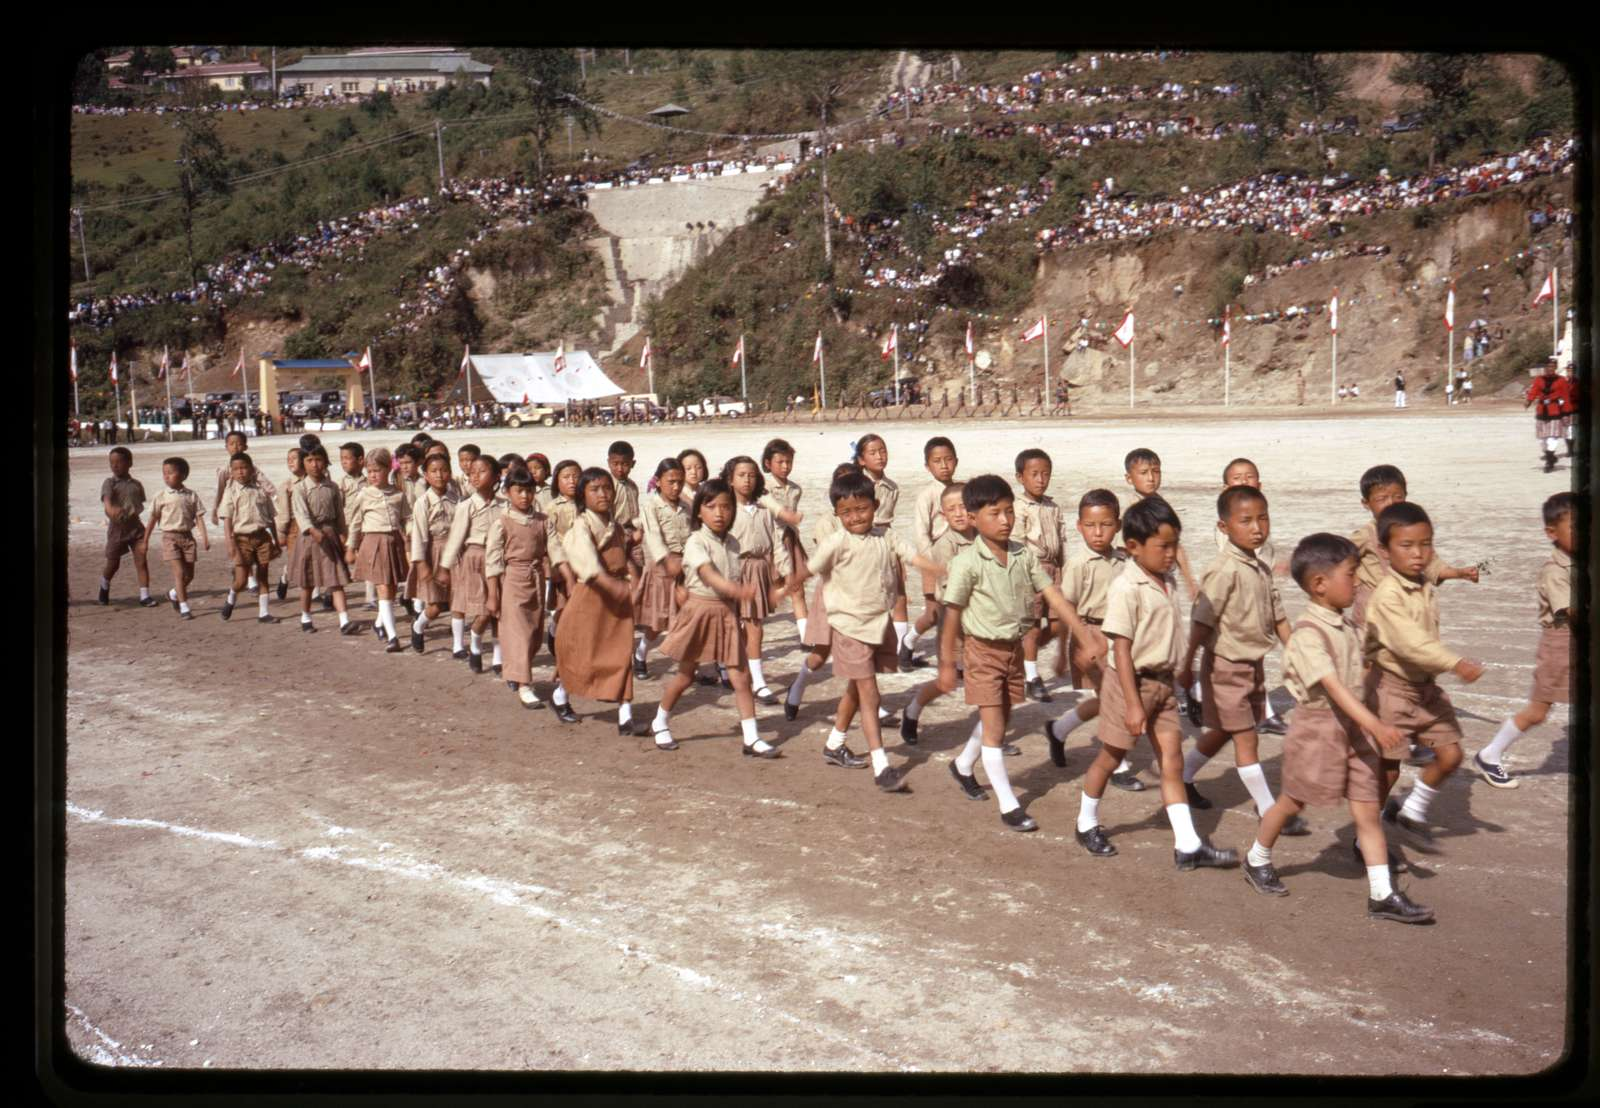 [School children lining up for the birthday parade in honor of Palden Thondup Namgyal, King of Sikkim, Gangtok, Sikkim]